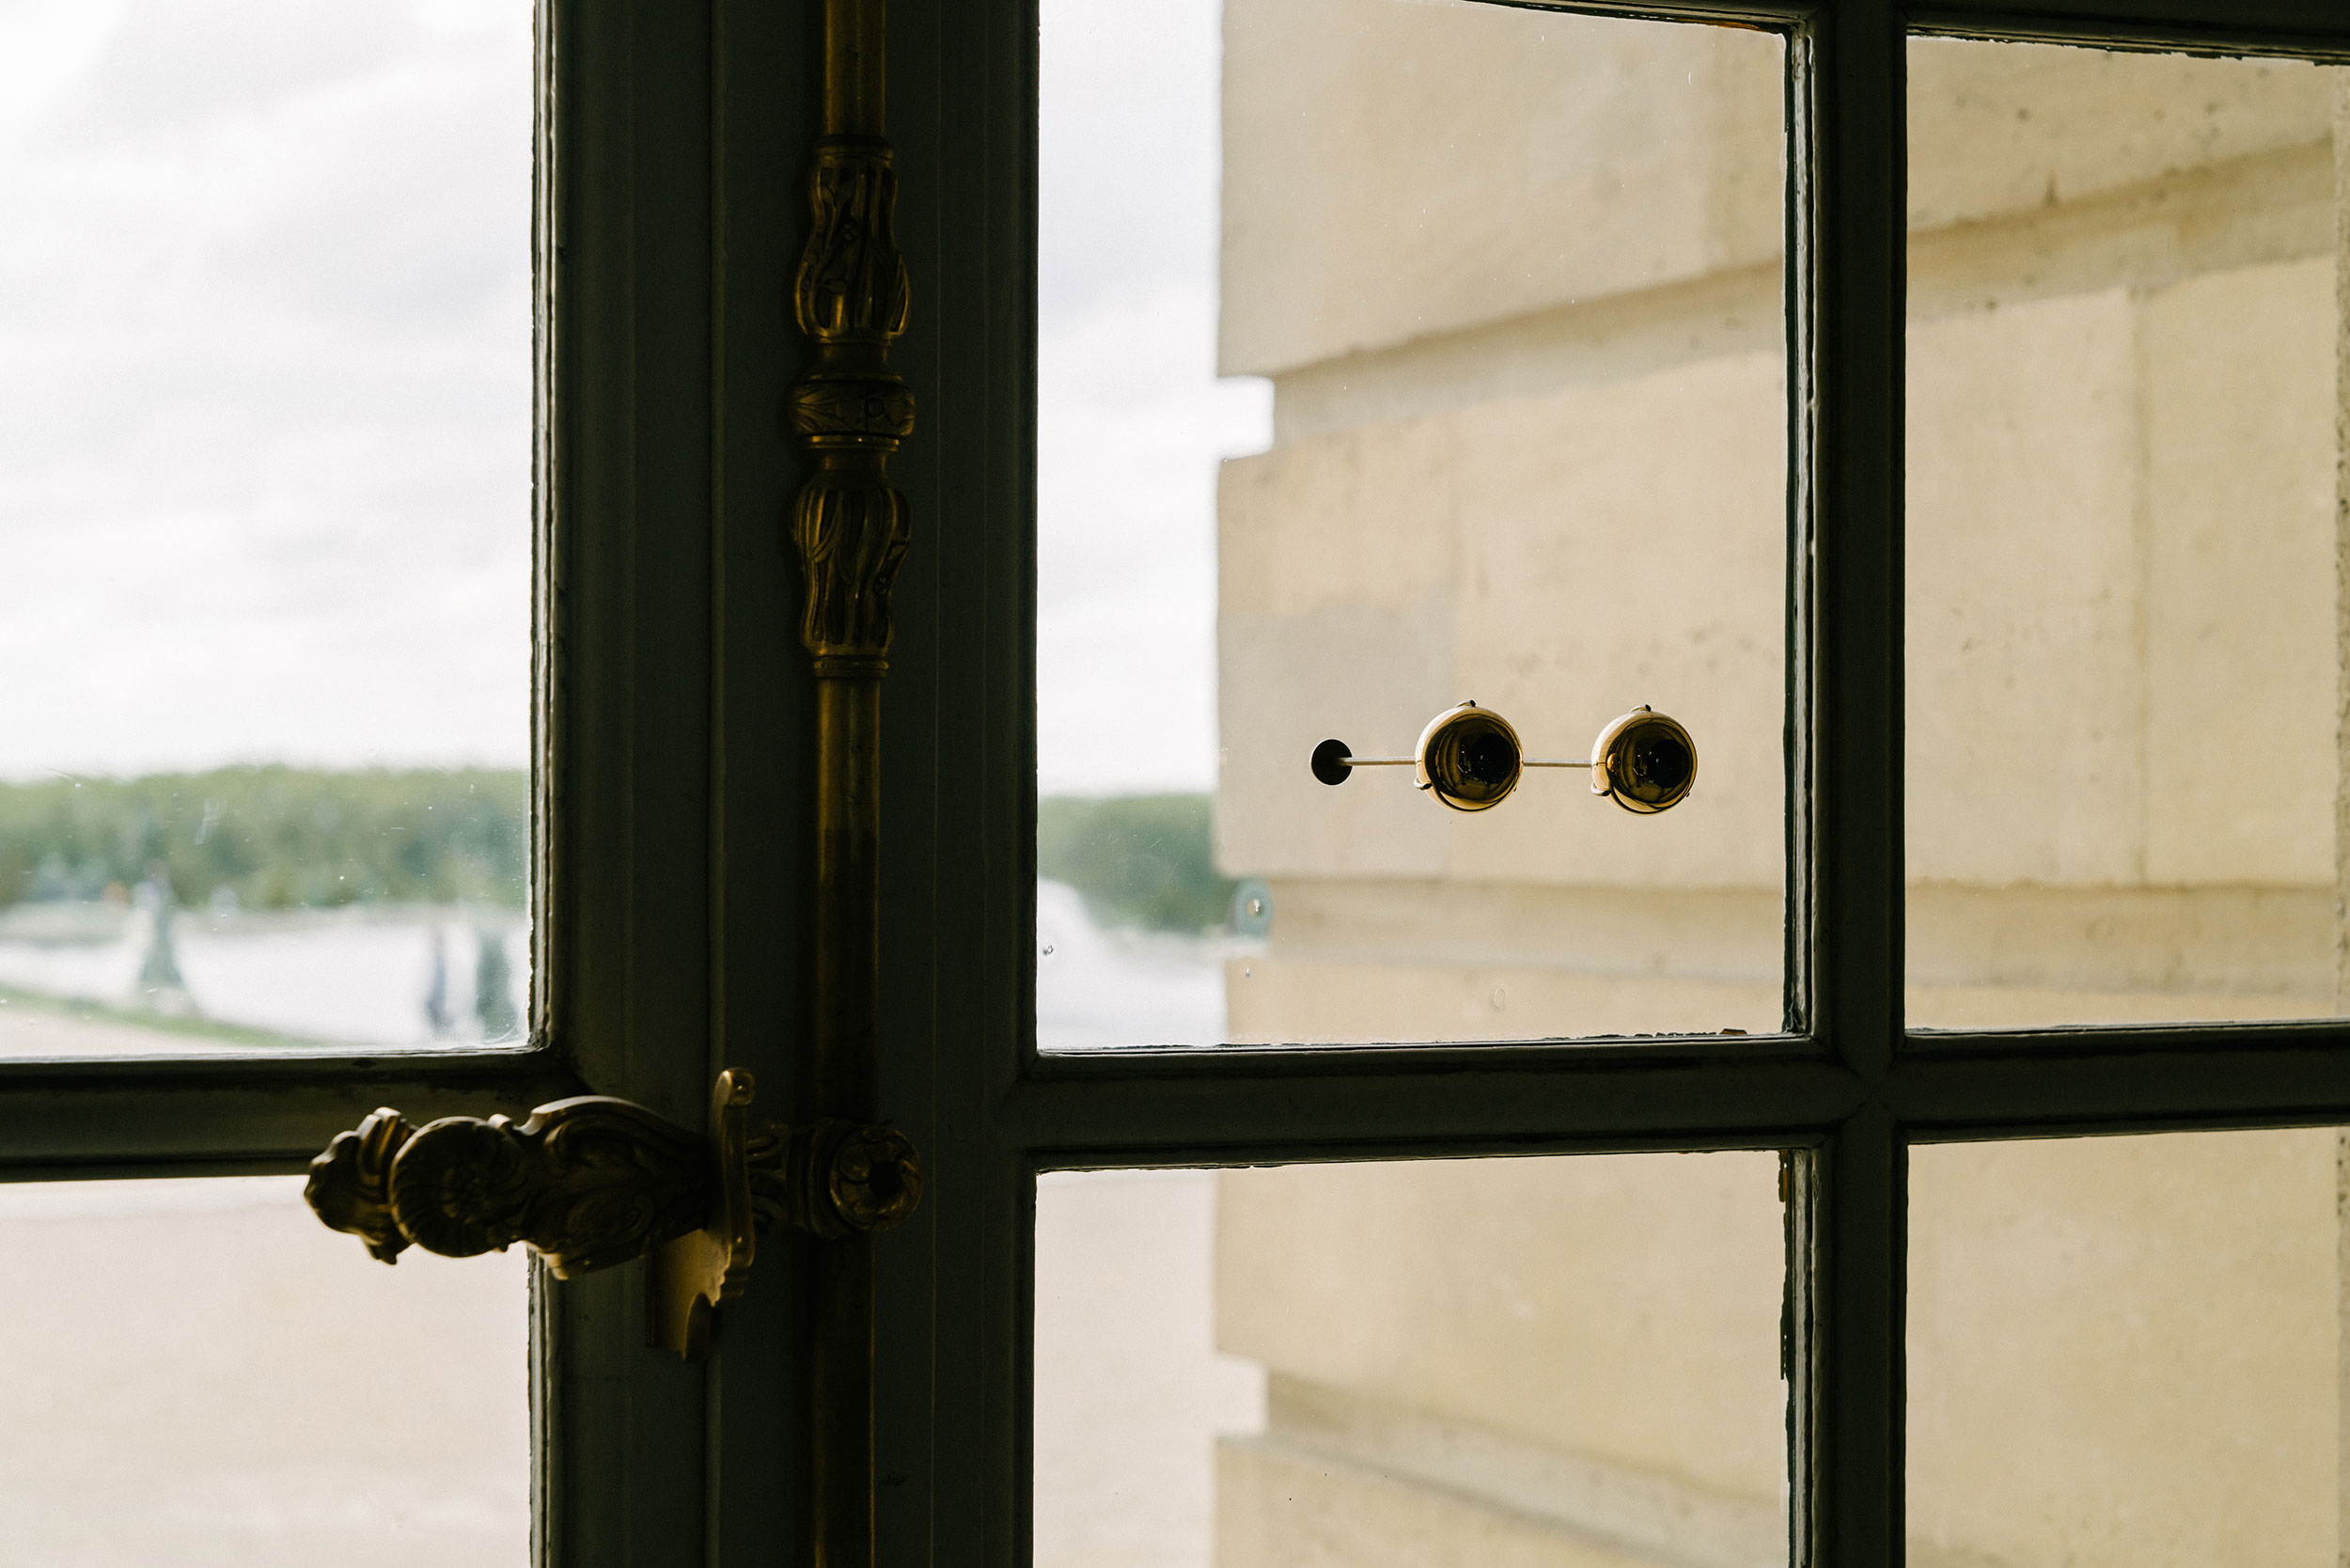 The gaze of Versailles, 2016 by Olafur Eliasson